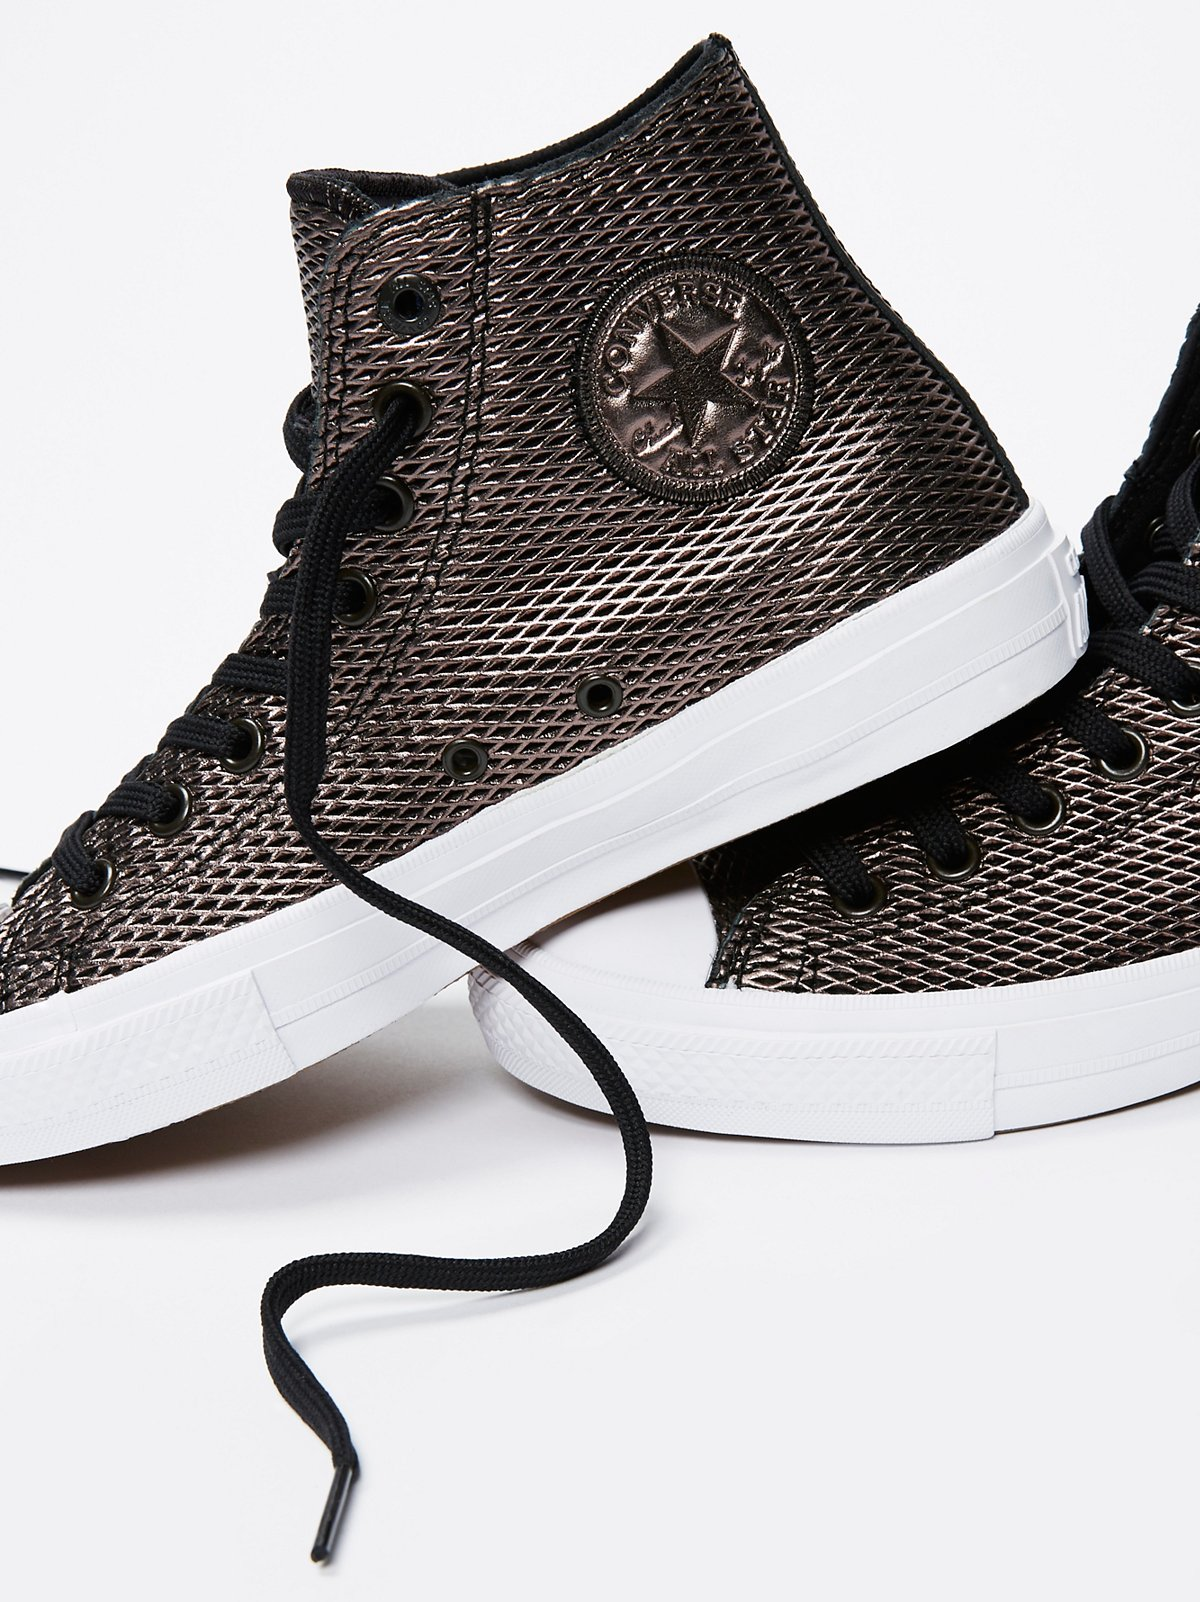 Perforated Metallic Leather Hi Top Chucks